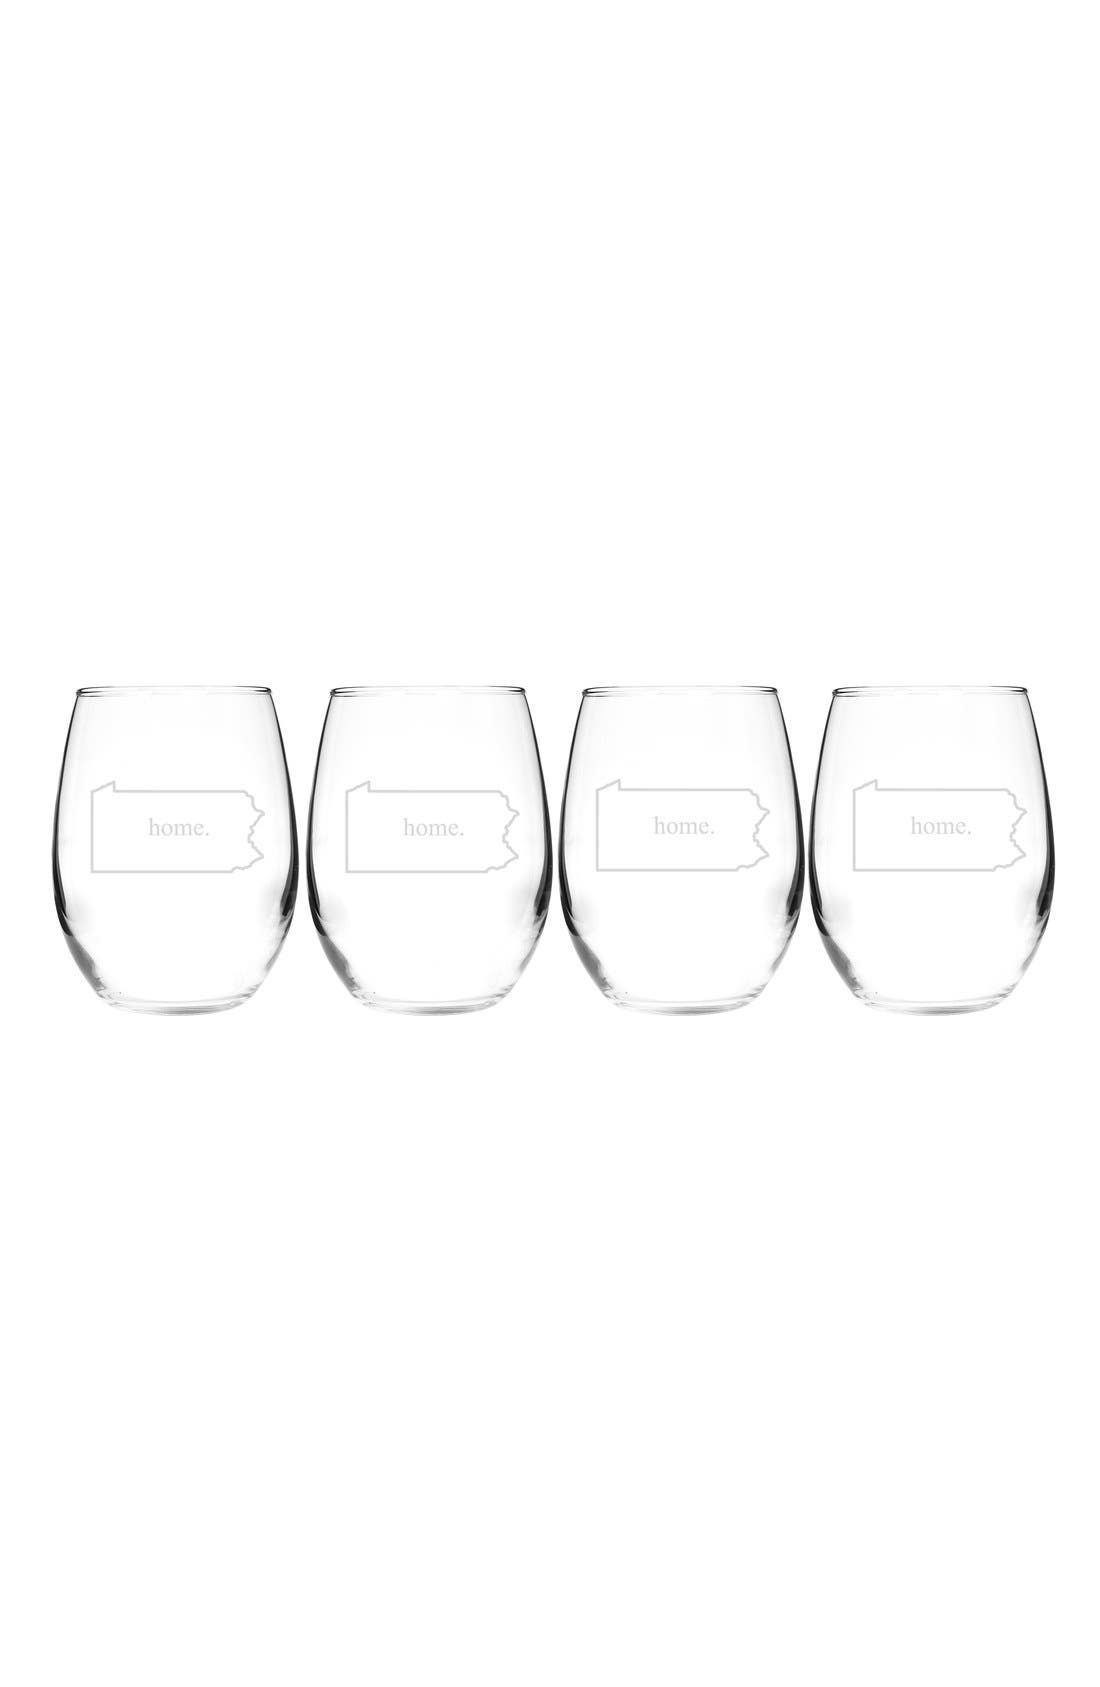 Home State Set of 4 Stemless Wine Glasses,                             Main thumbnail 39, color,